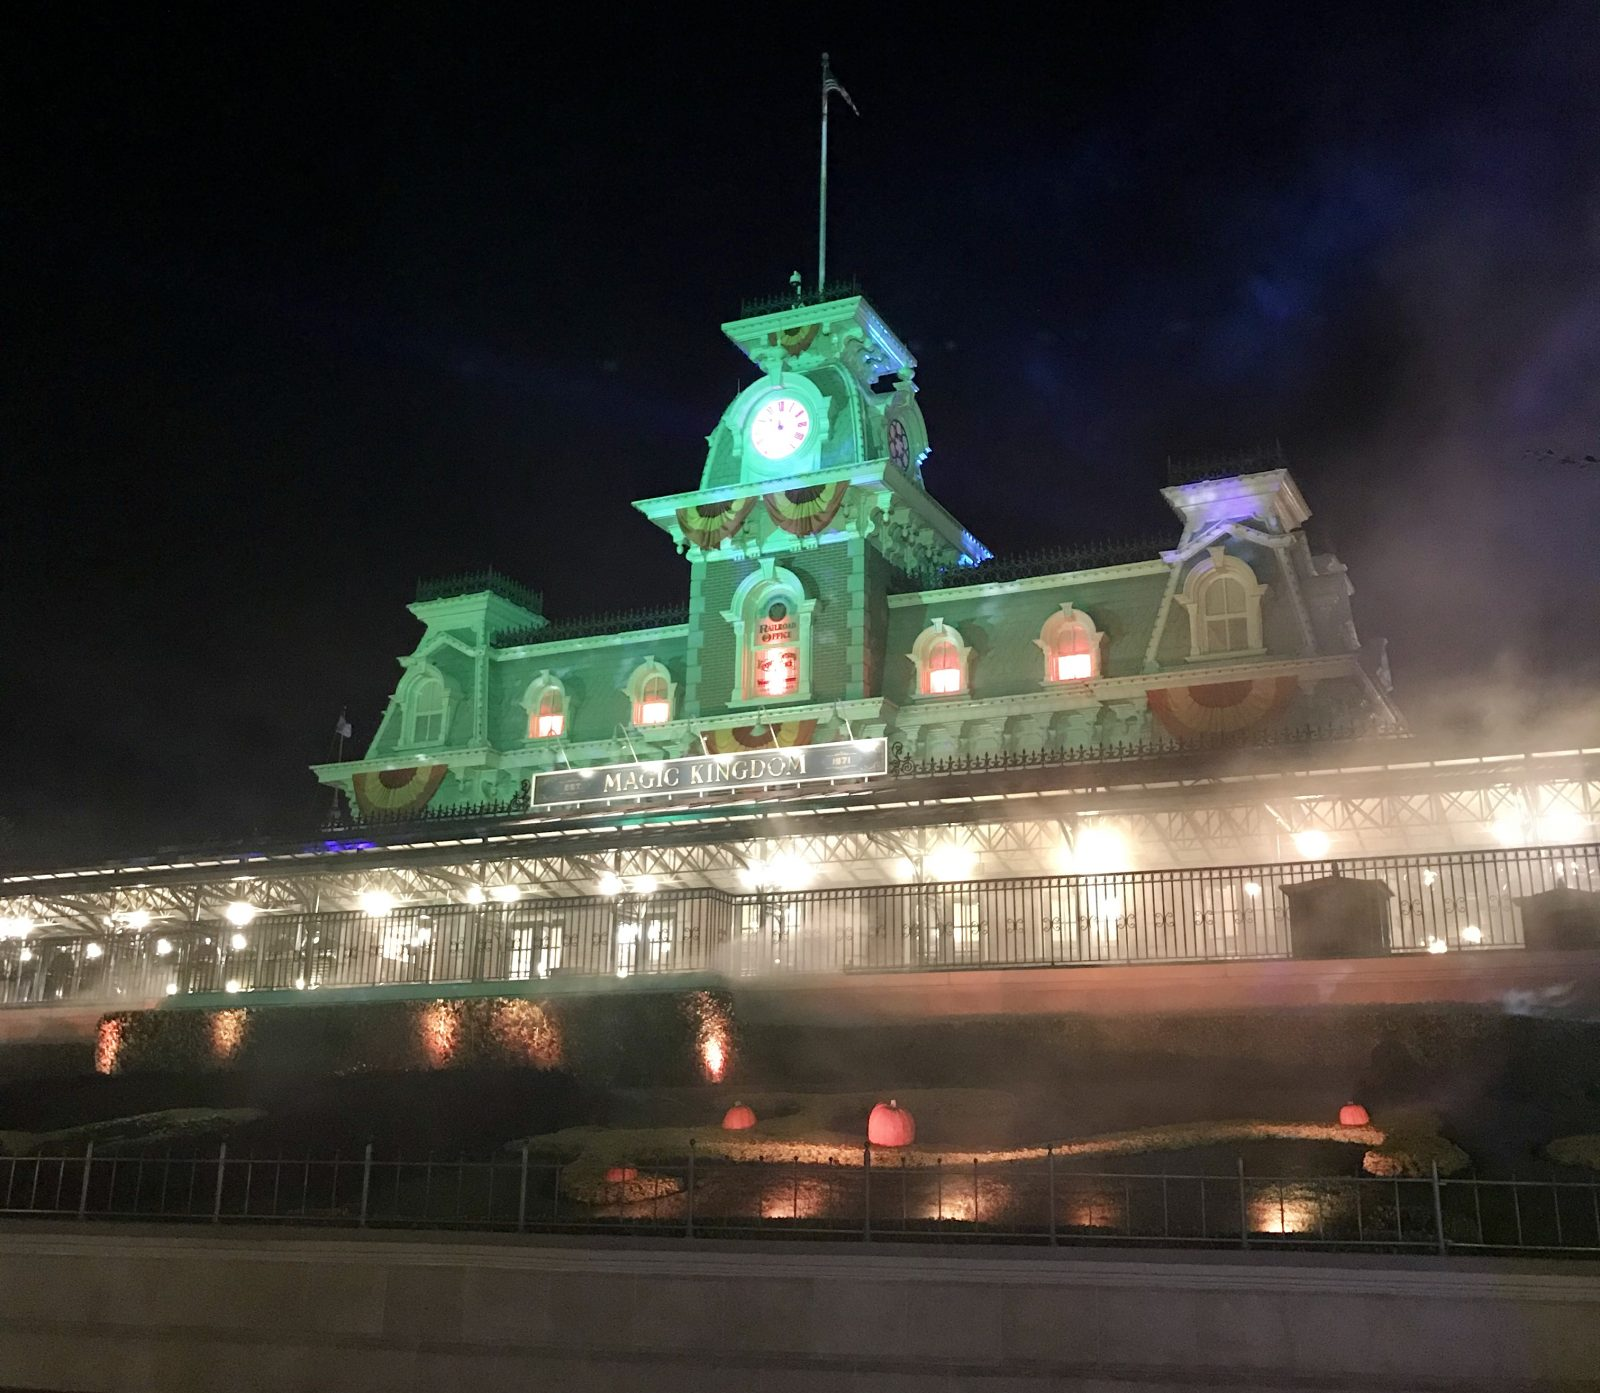 magic kingrom entrance at night decorated for halloween